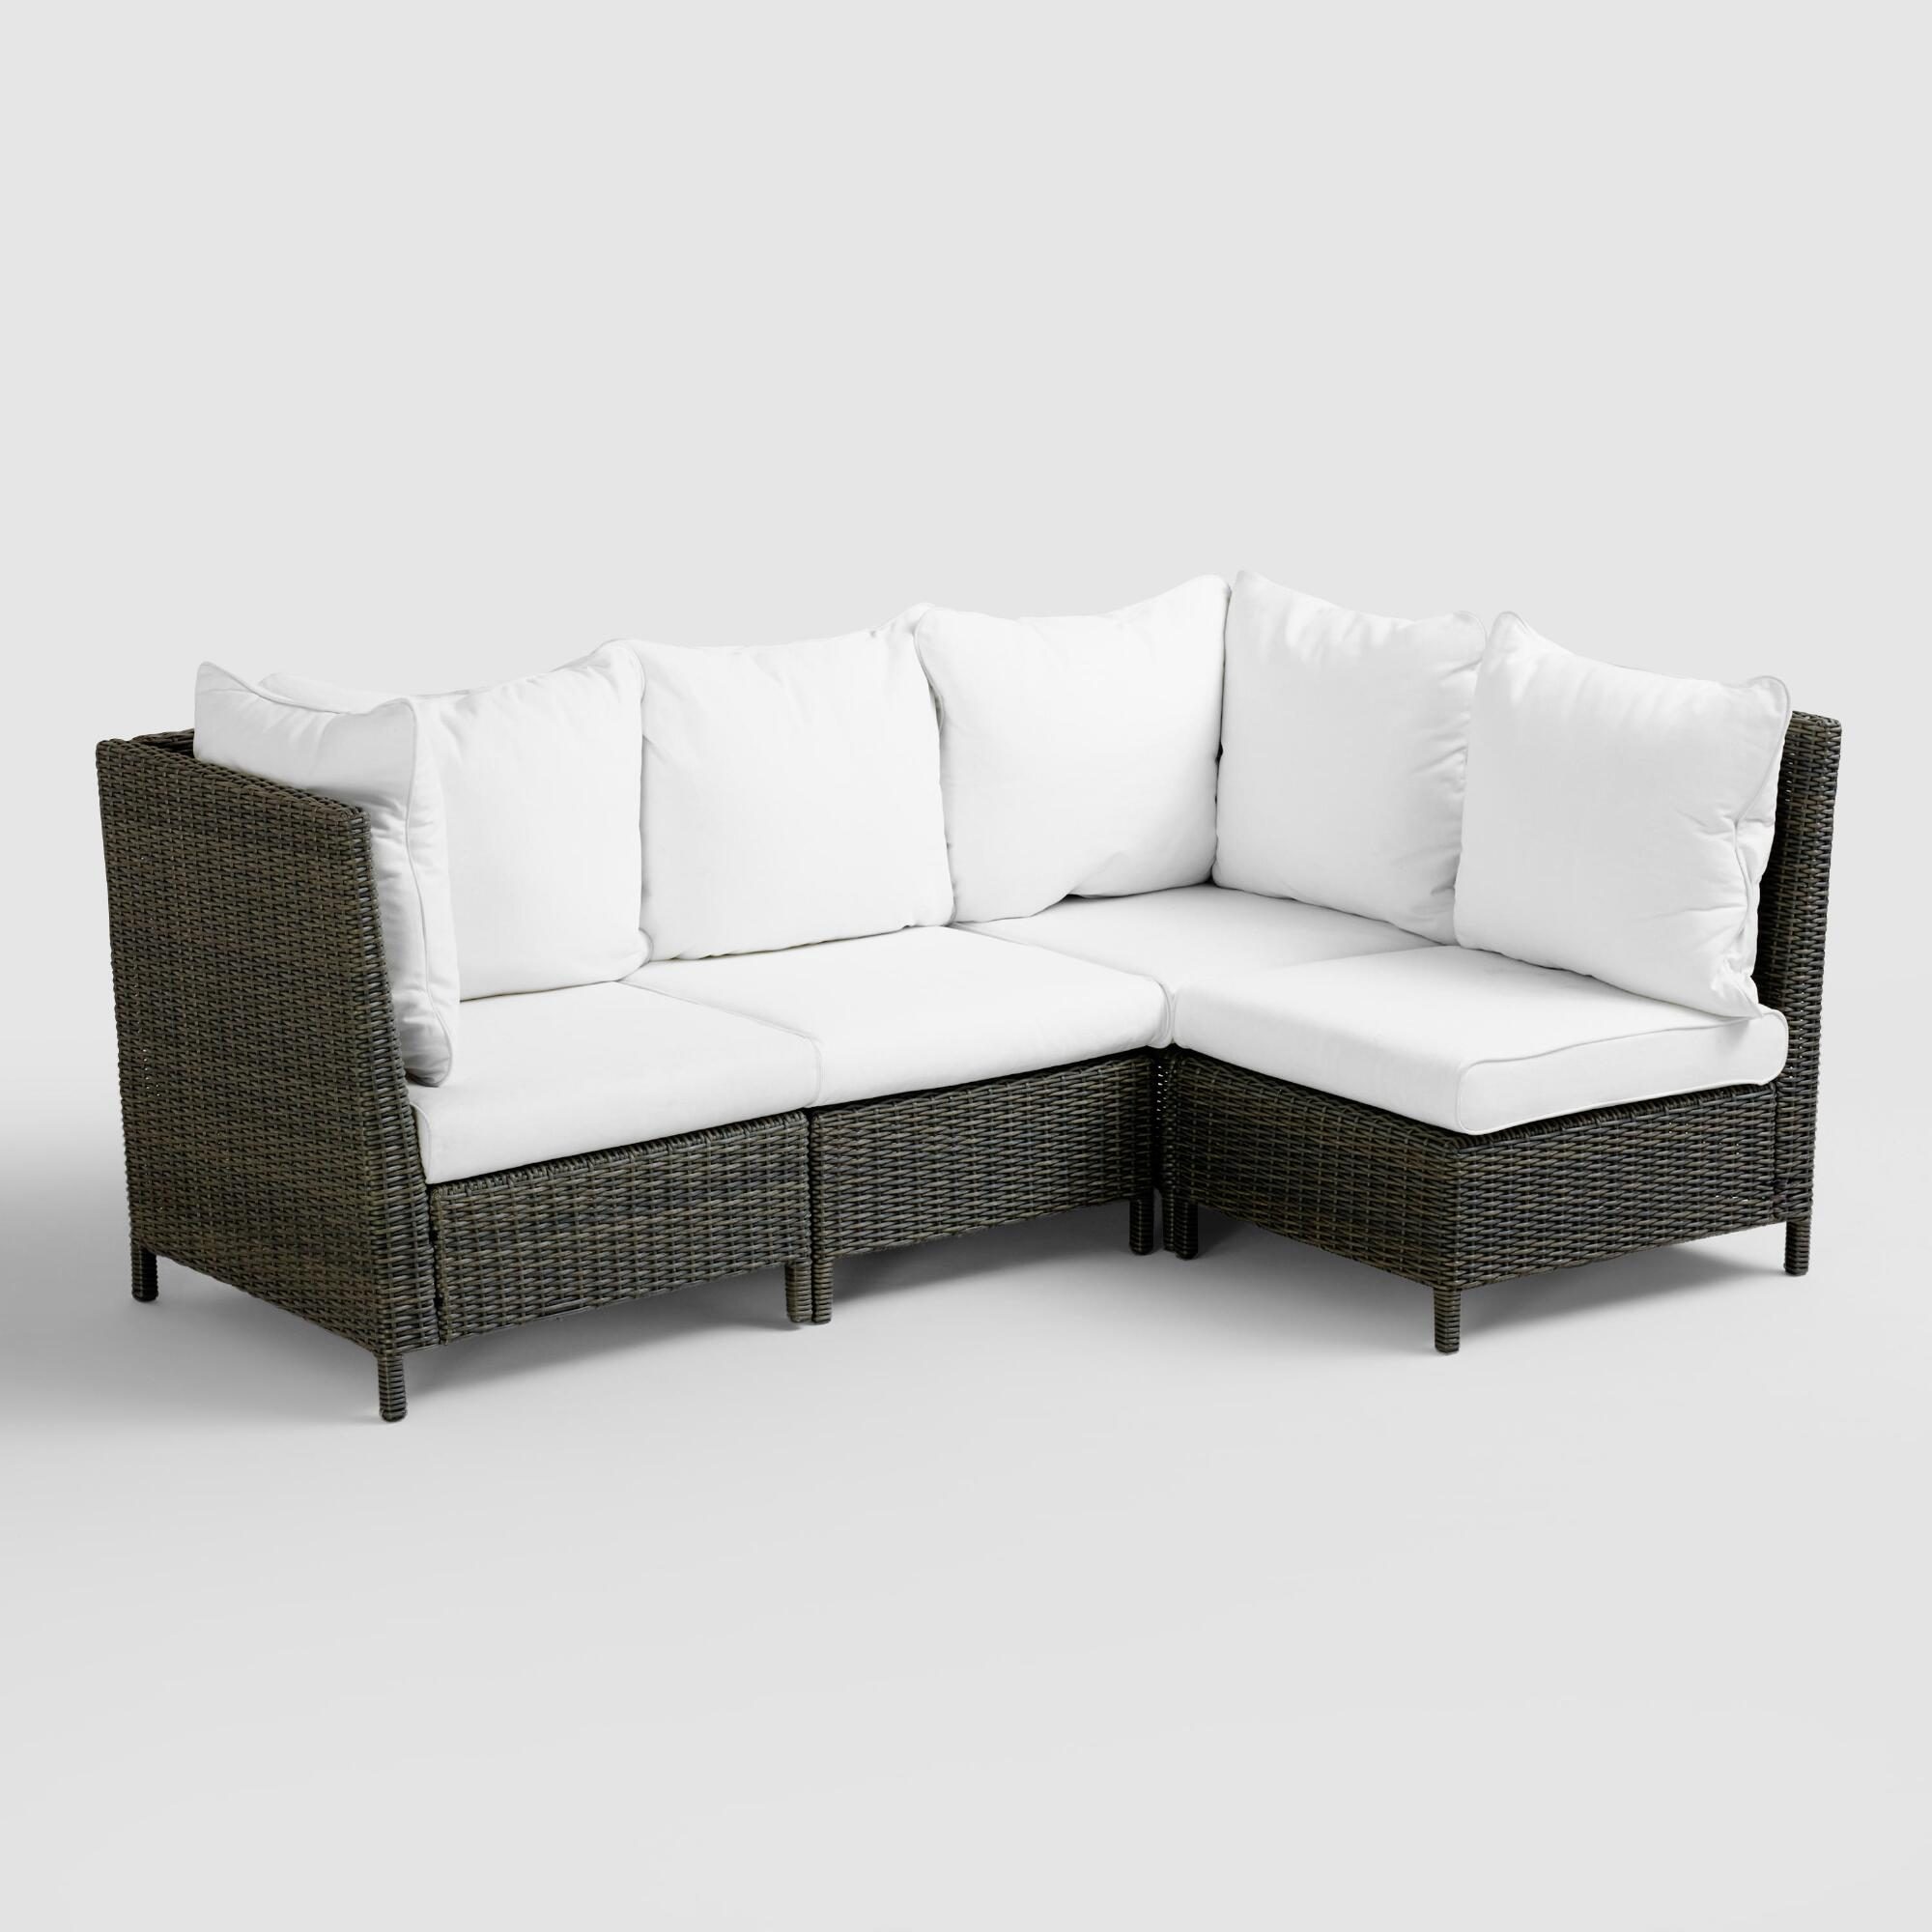 solano outdoor sectional collection world market. Black Bedroom Furniture Sets. Home Design Ideas